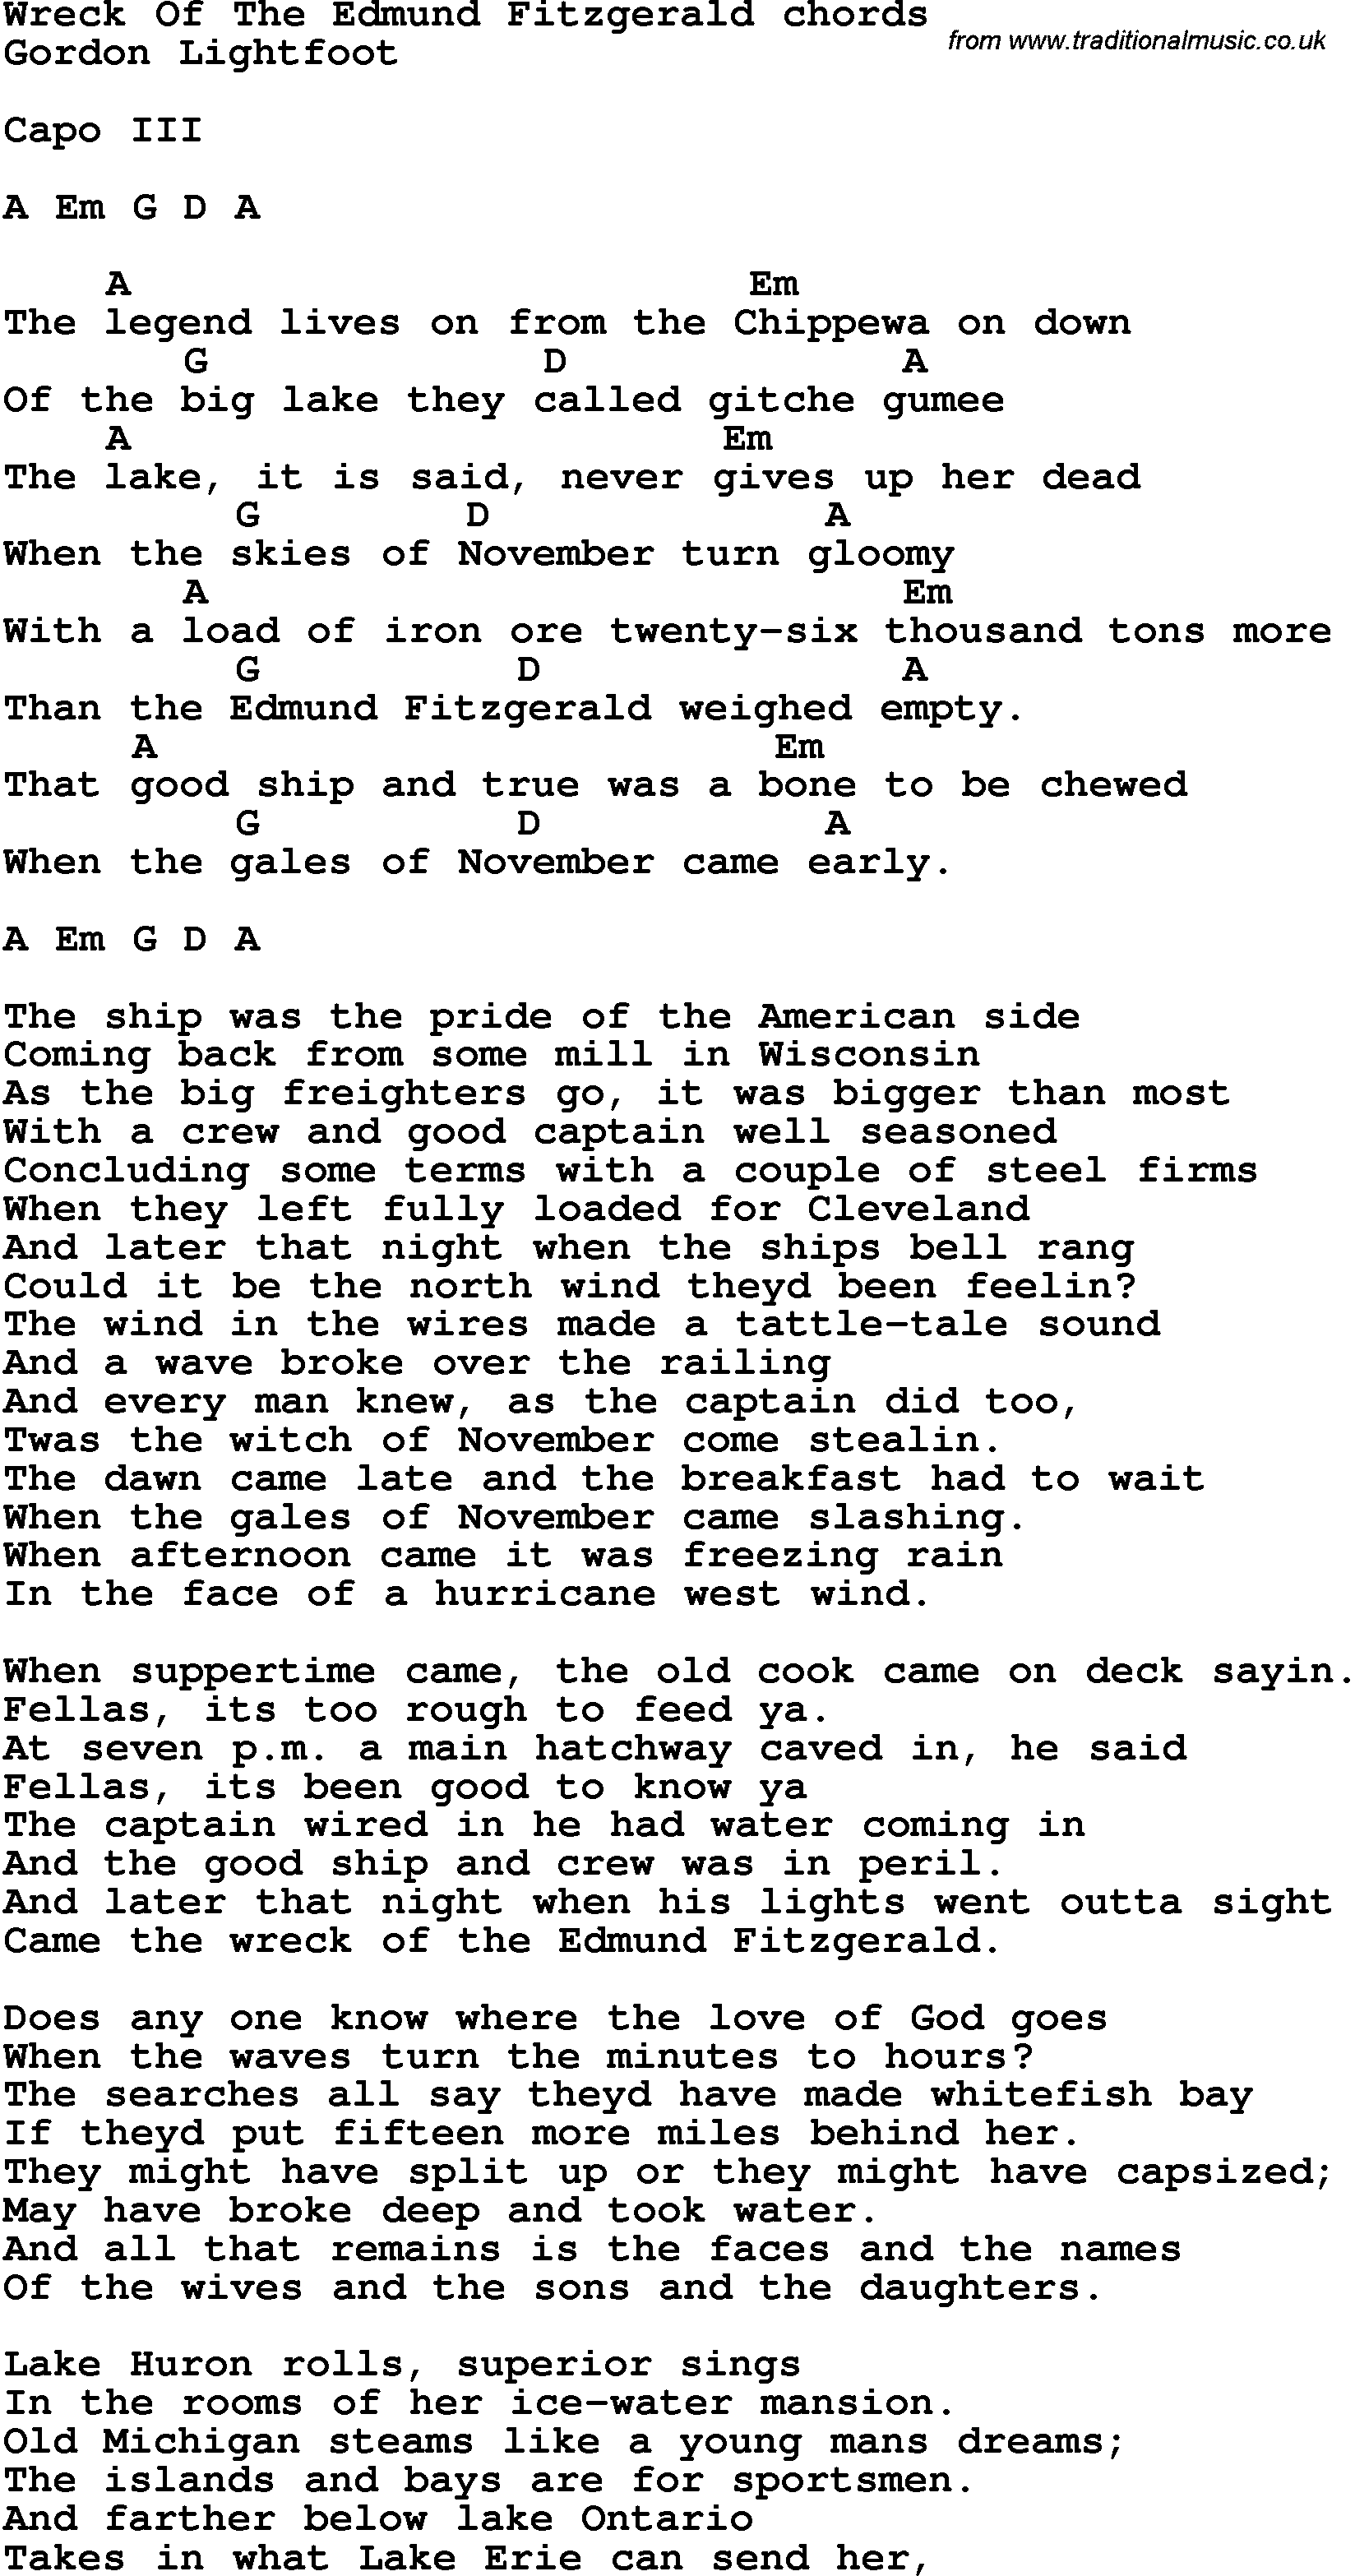 Song Lyrics With Guitar Chords For Wreck Of The Edmund